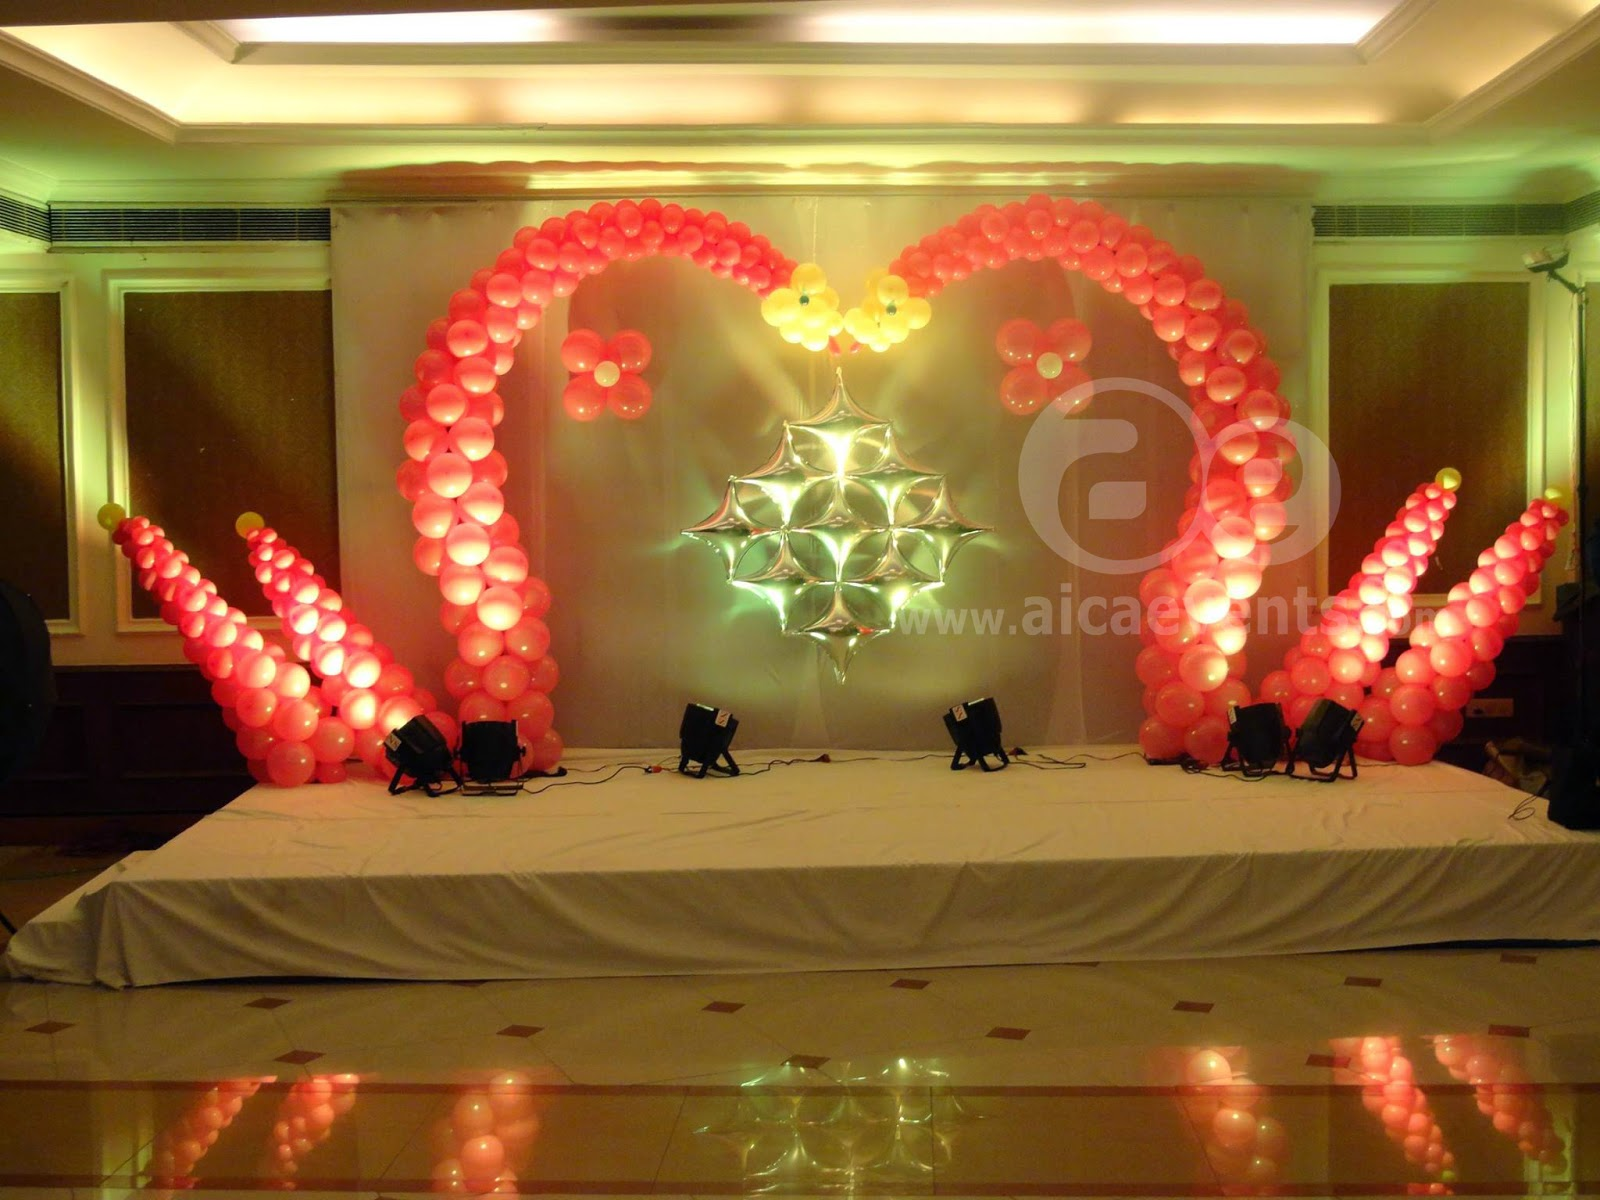 aicaevents Balloon Decorations with different stage back drops